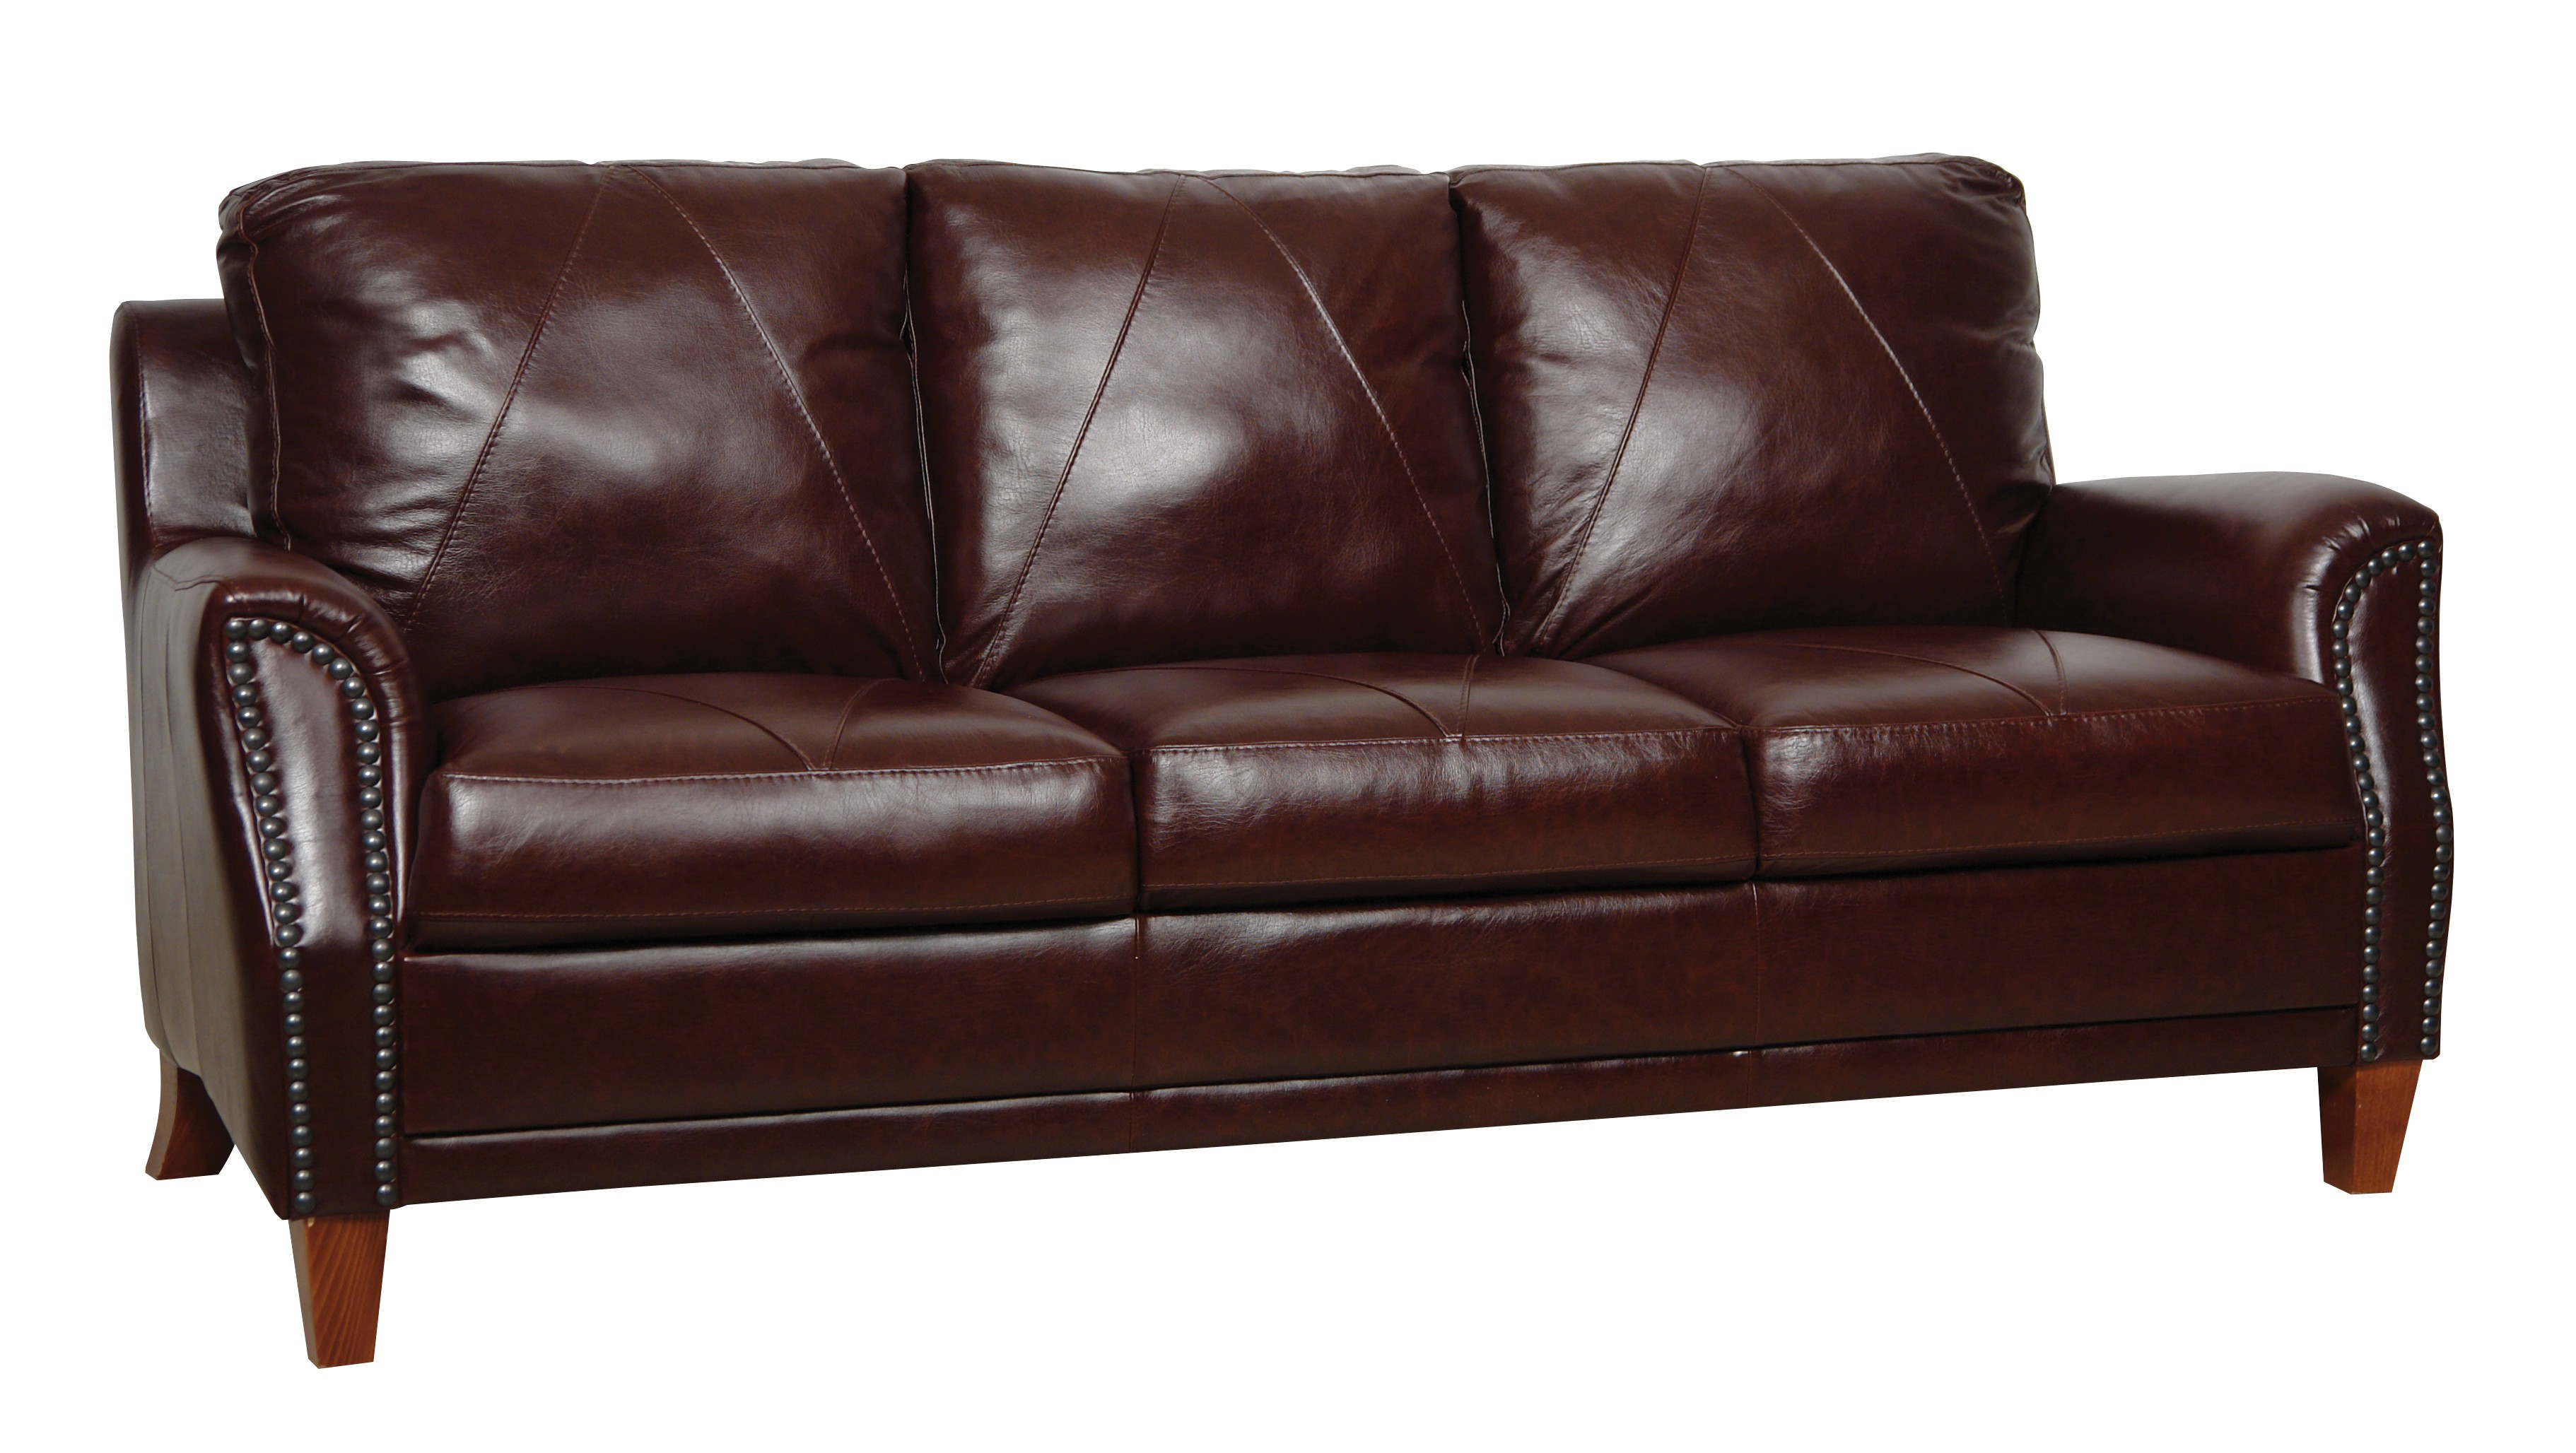 leathers sofa beautiful pillows austin italian leather from luke coleman